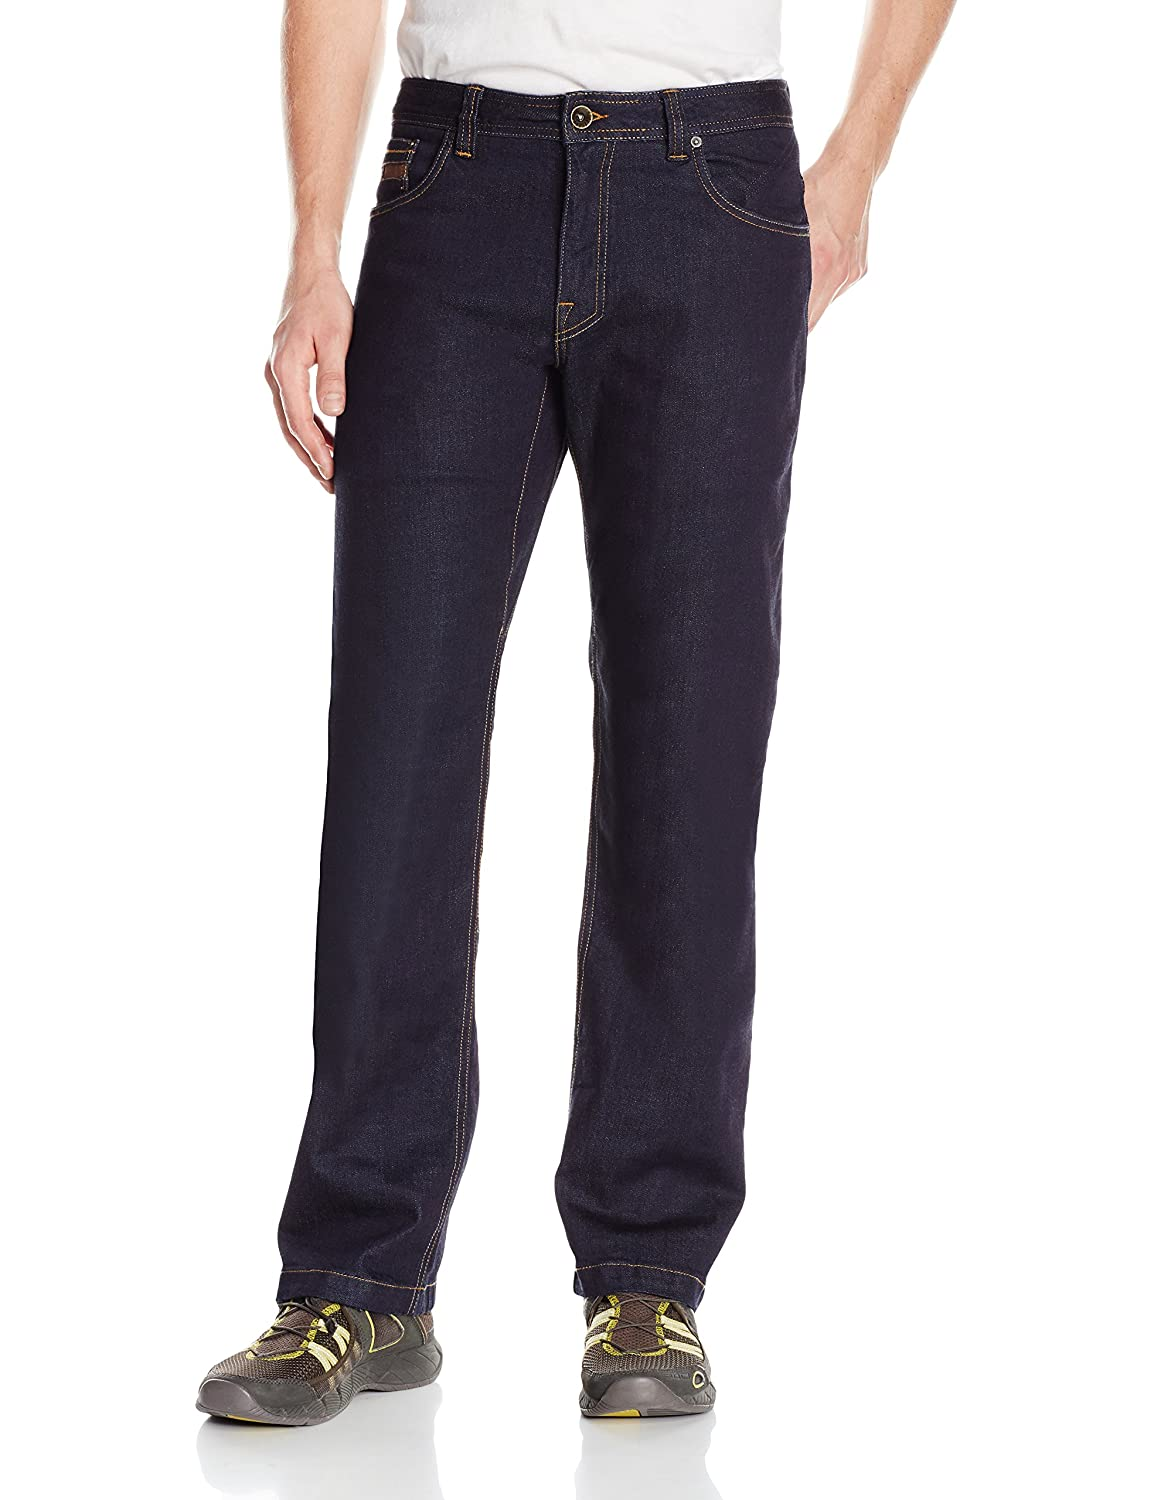 PrAna Men's M41173202 Axiom Jean 32